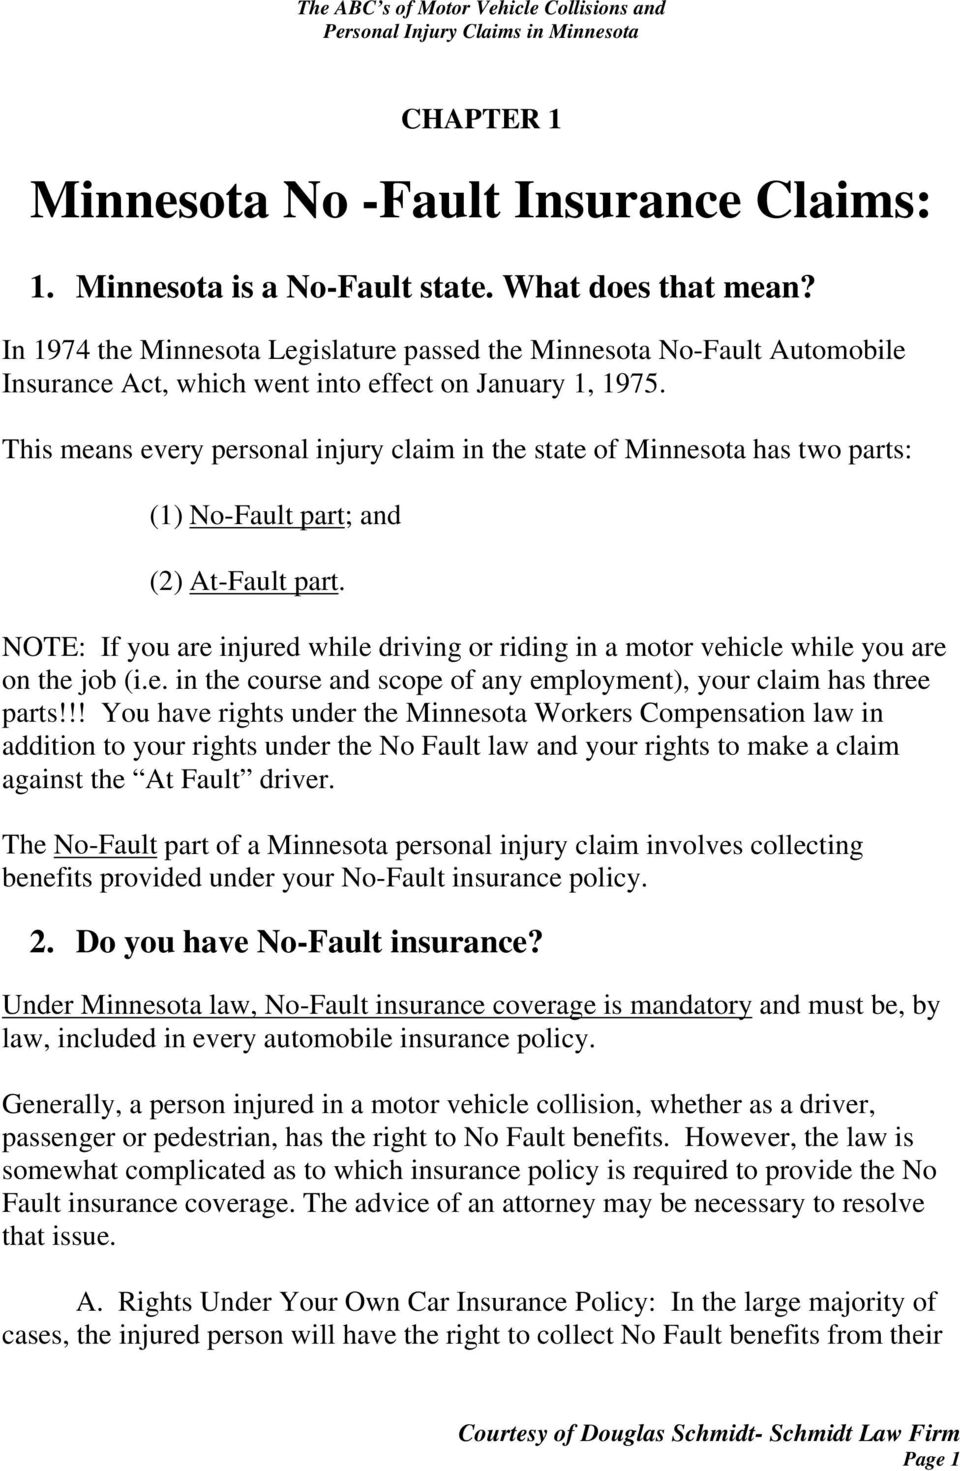 This means every personal injury claim in the state of Minnesota has two parts: (1) No-Fault part; and (2) At-Fault part.